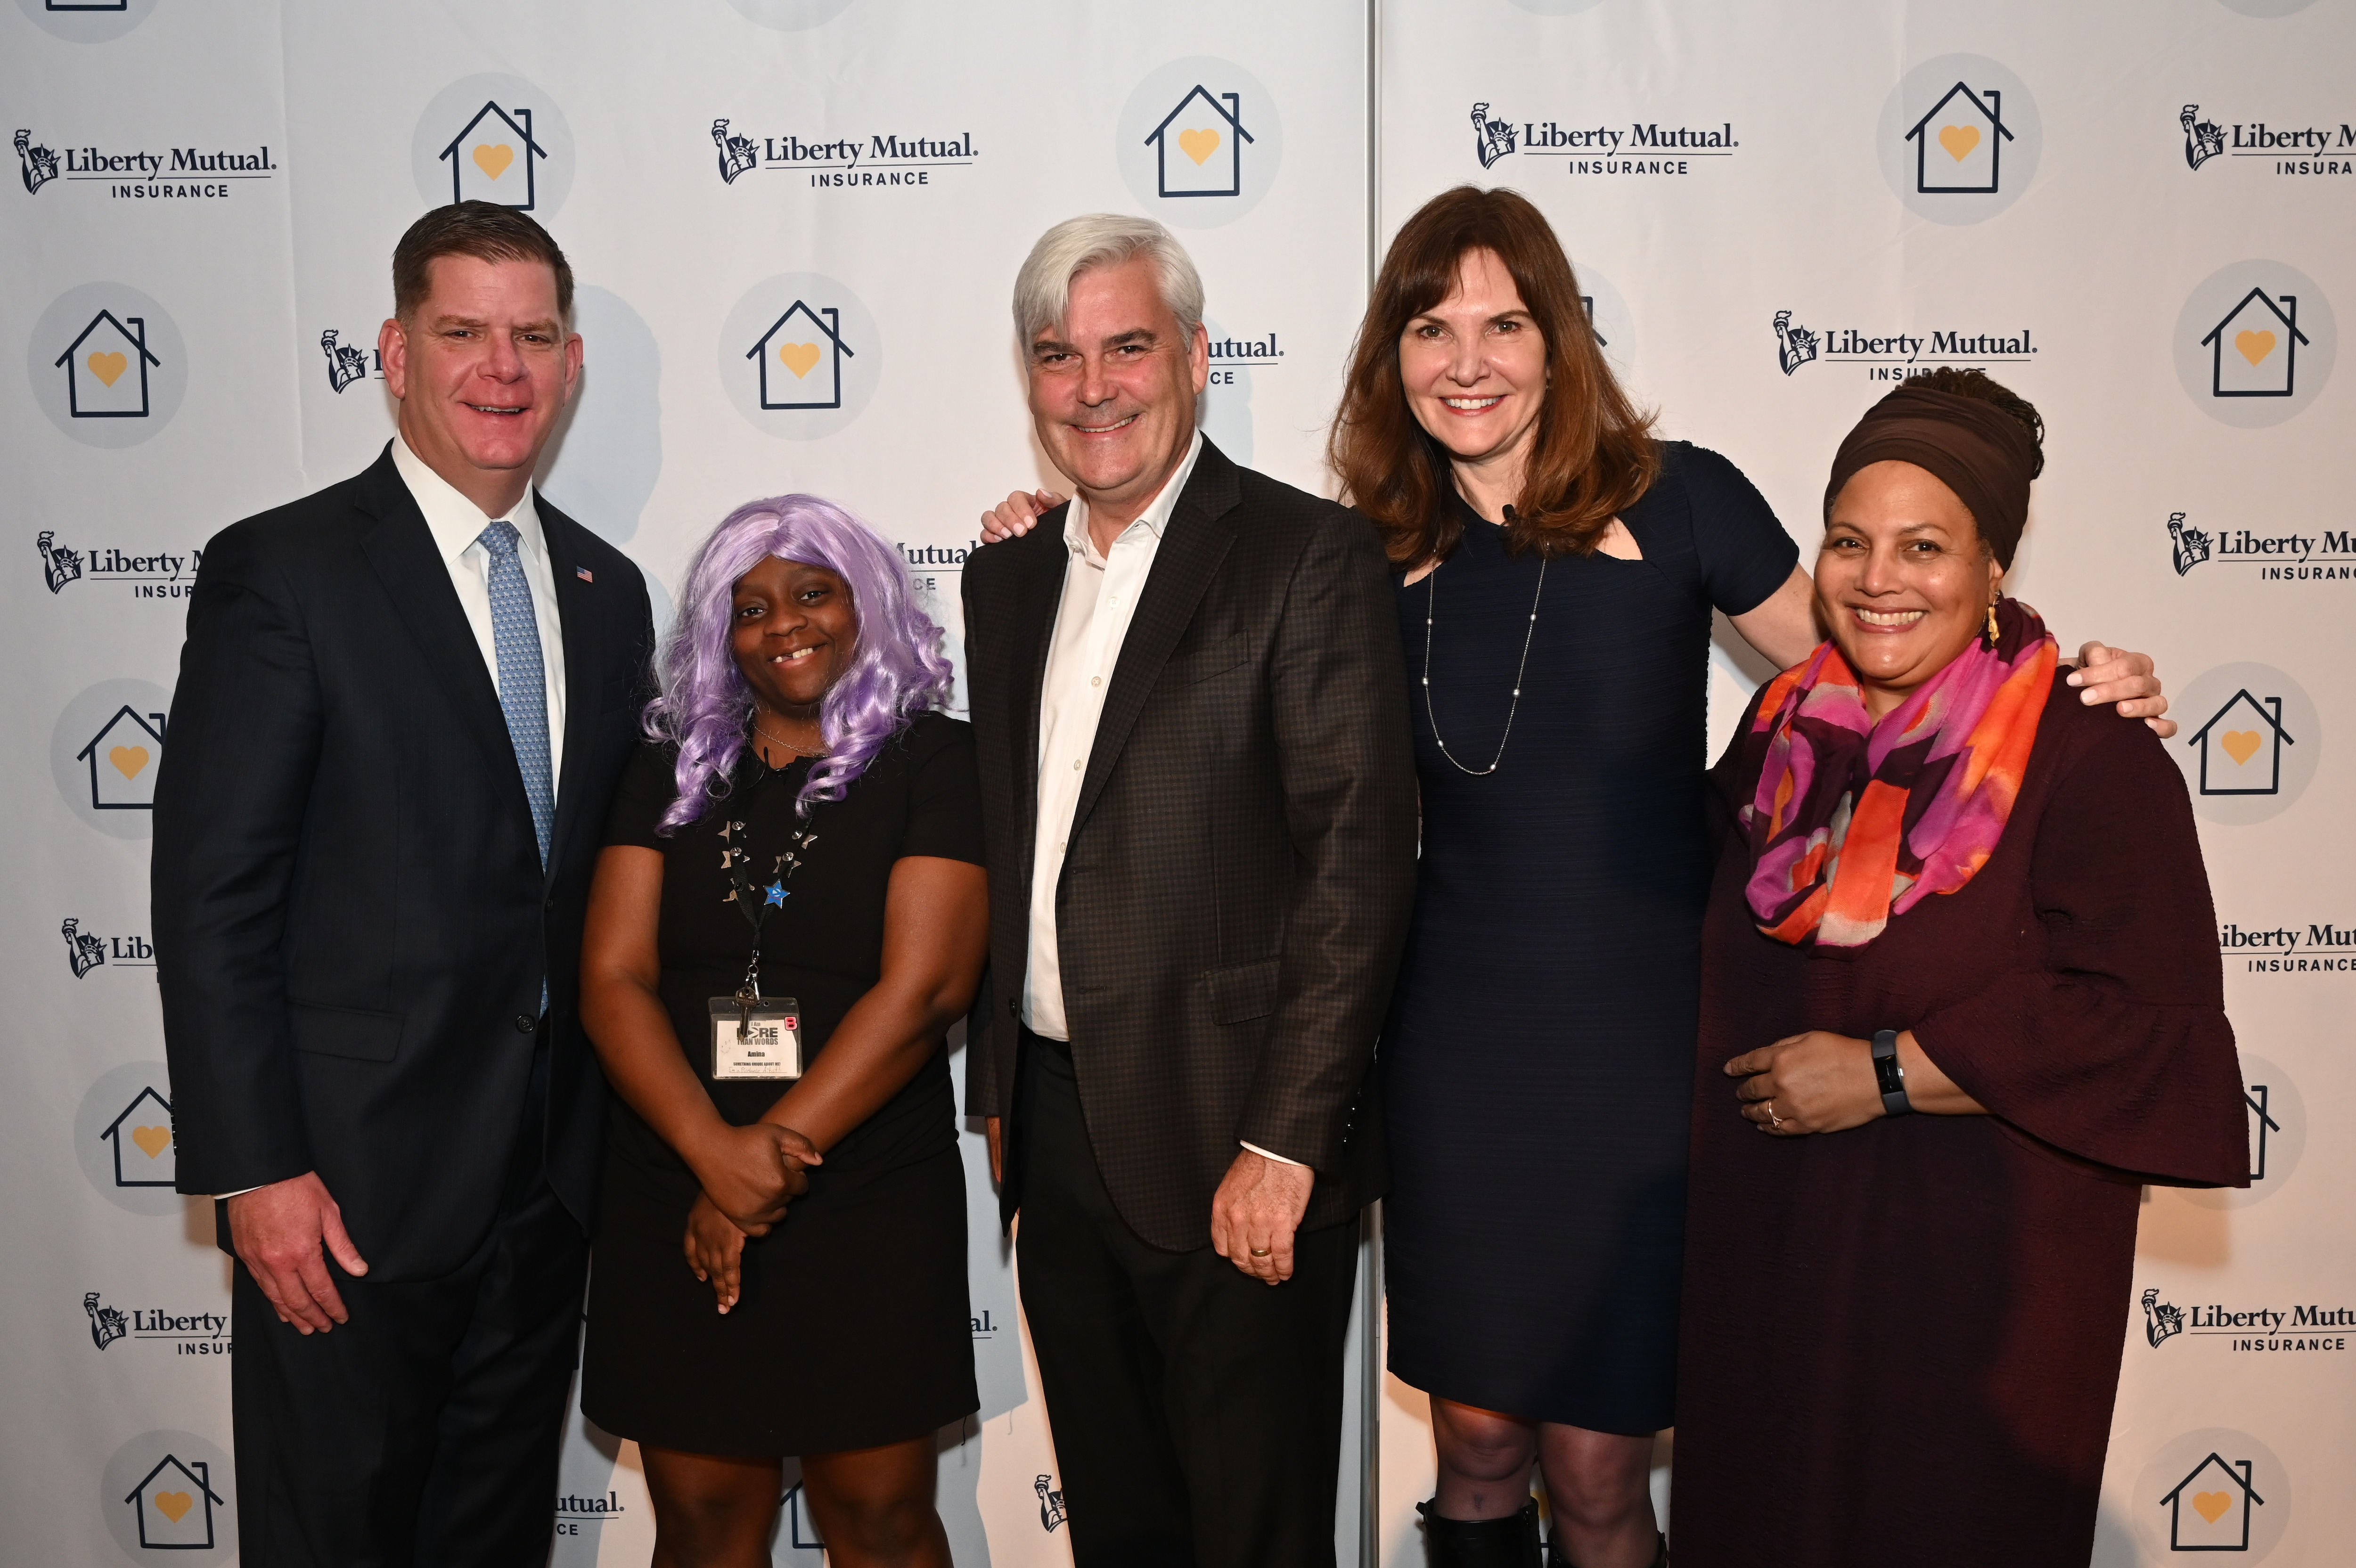 mage of Liberty Mutual CEO and leaders with Boston Mayor Marty Walsh and representative from A Way Home